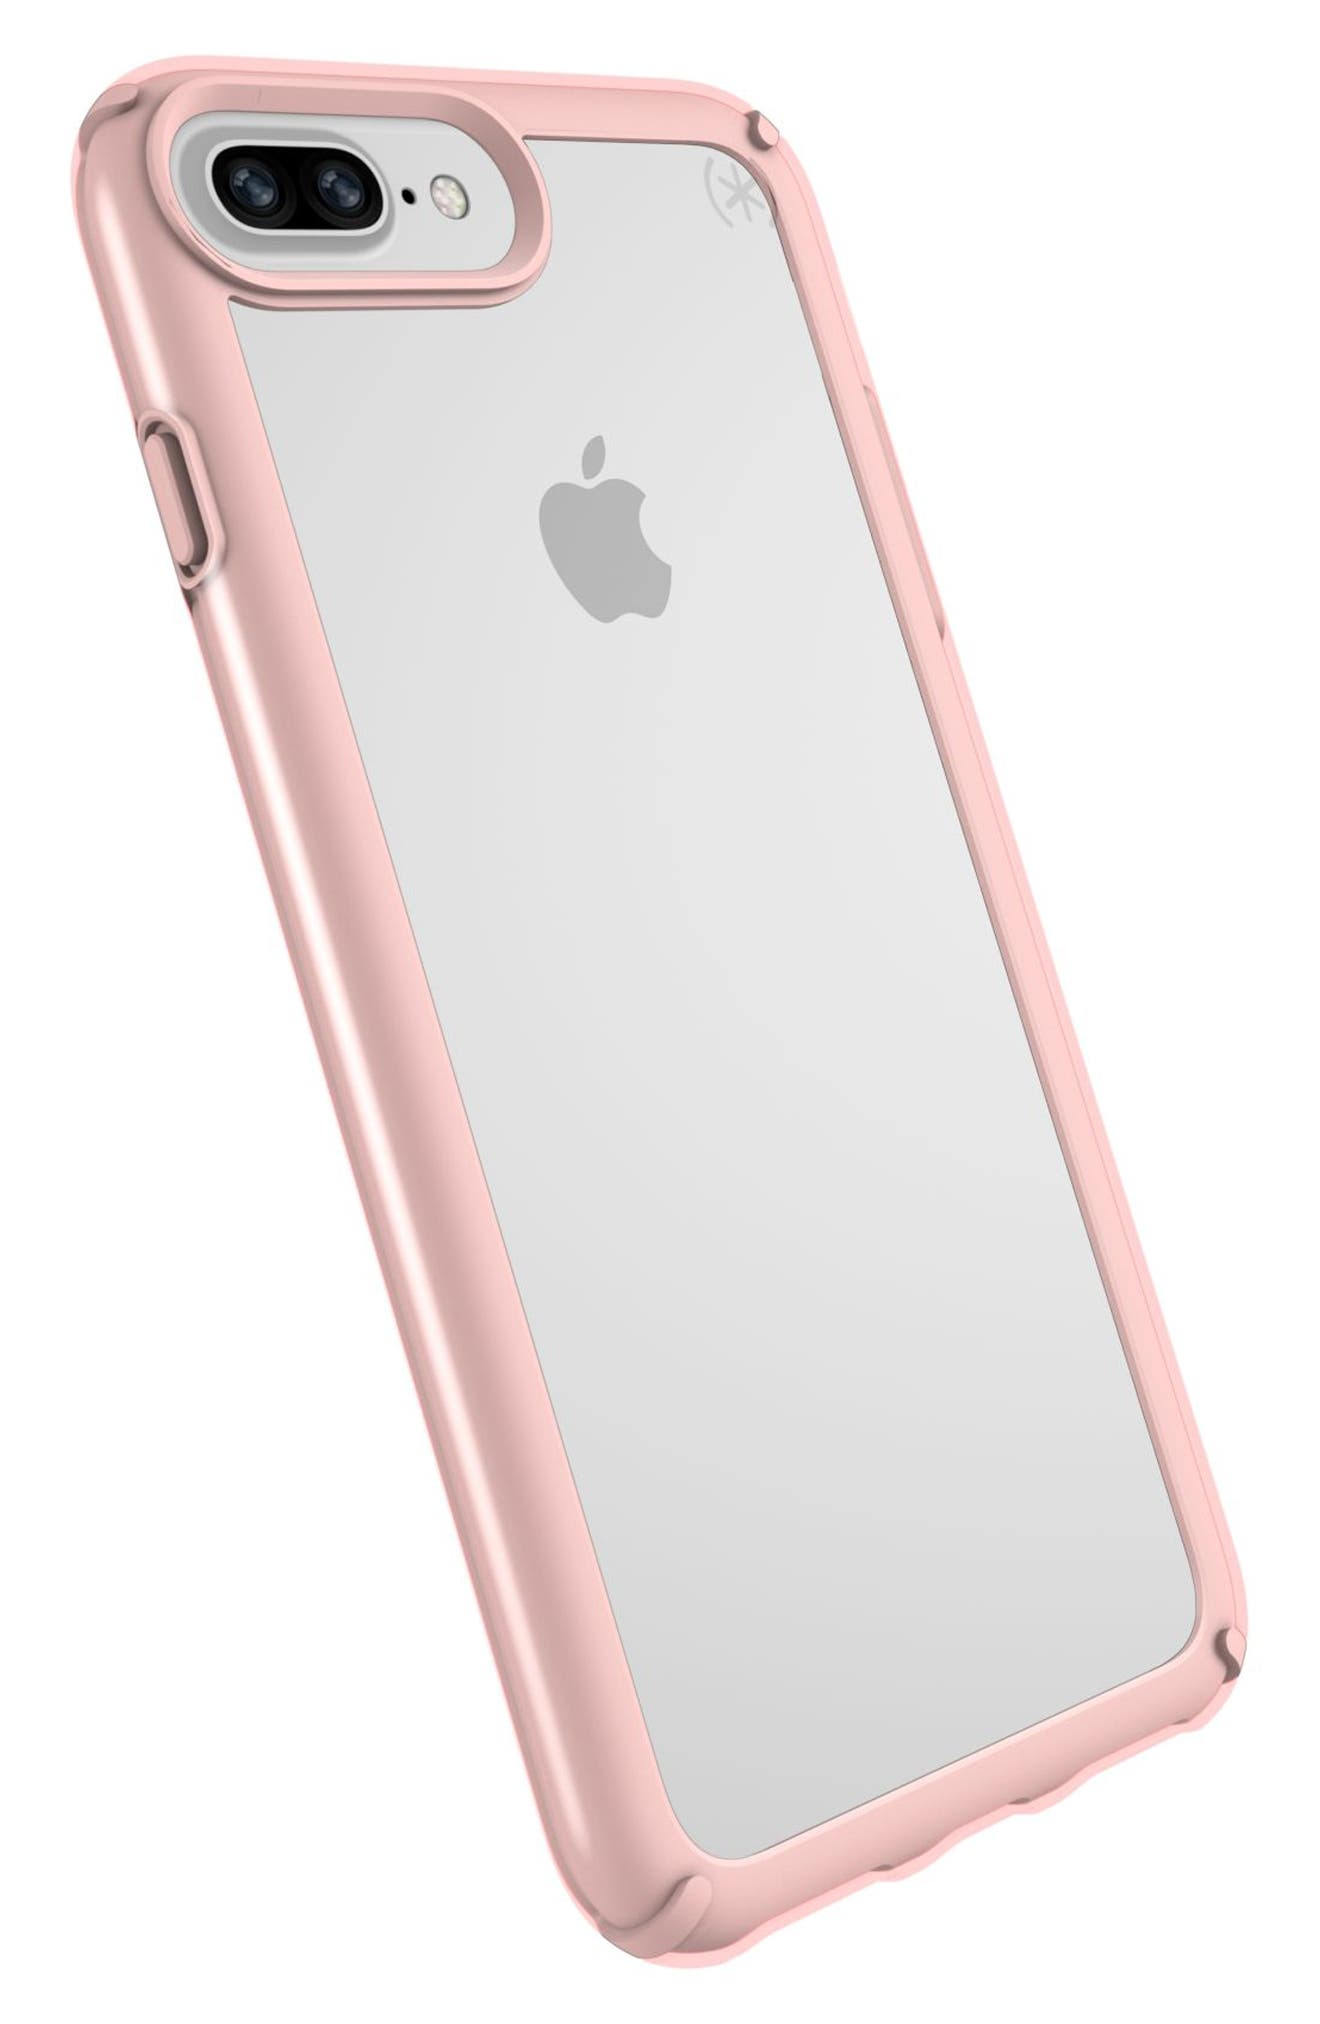 iPhone 6/6s/7/8 Plus Case,                             Alternate thumbnail 8, color,                             CLEAR/ ROSE GOLD